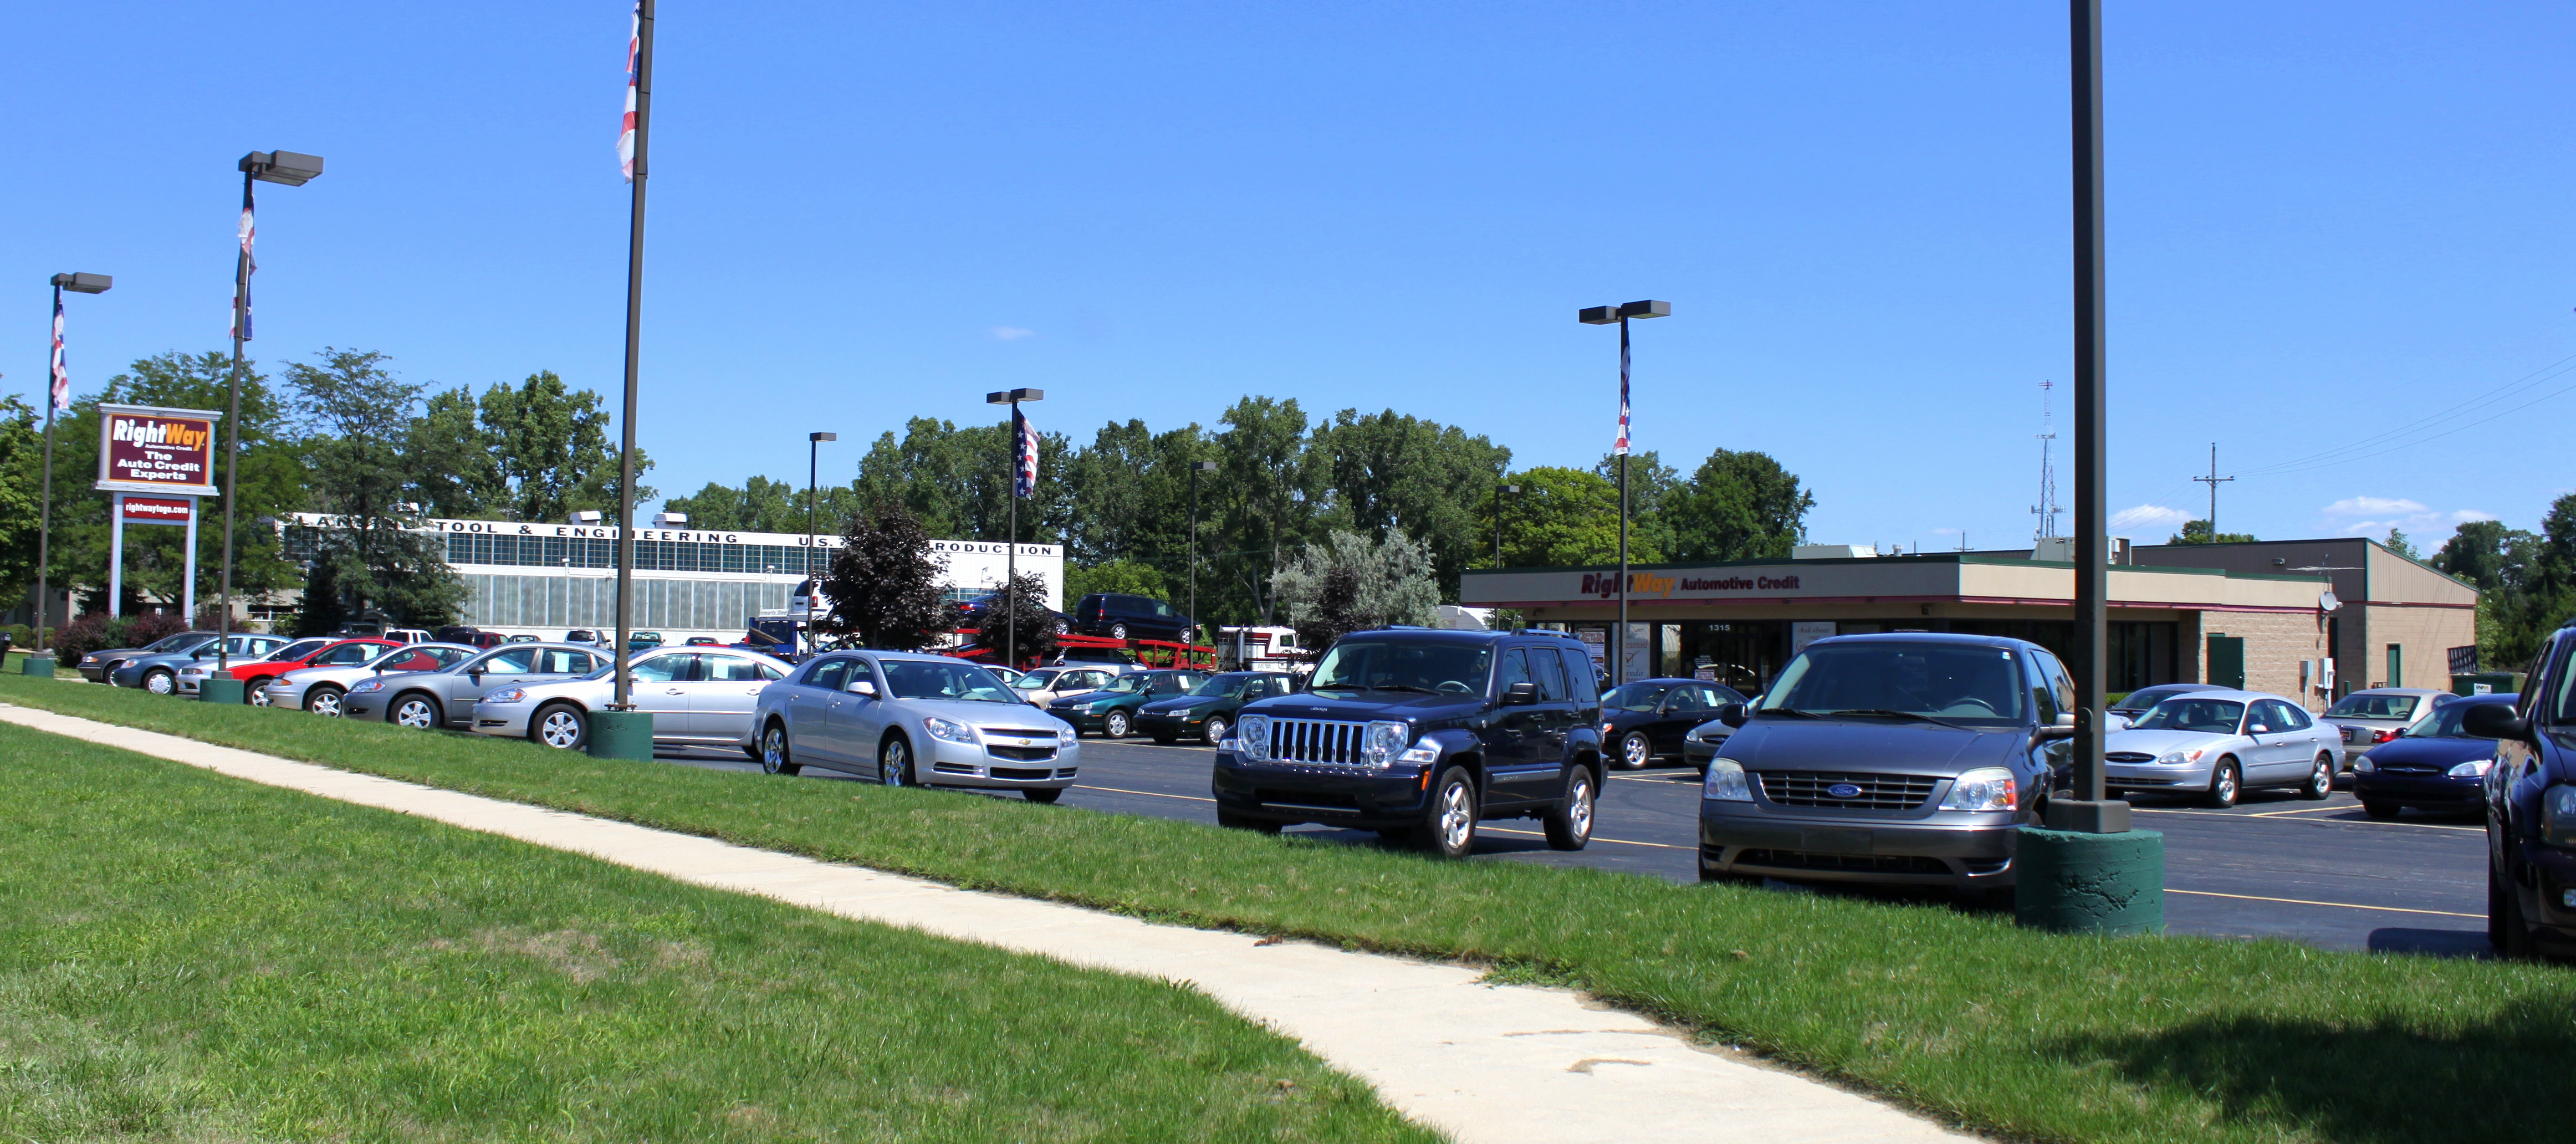 Rightway Auto Sales >> Rightway Auto Sales 1315 S Waverly Rd Lansing Mi 48917 Yp Com